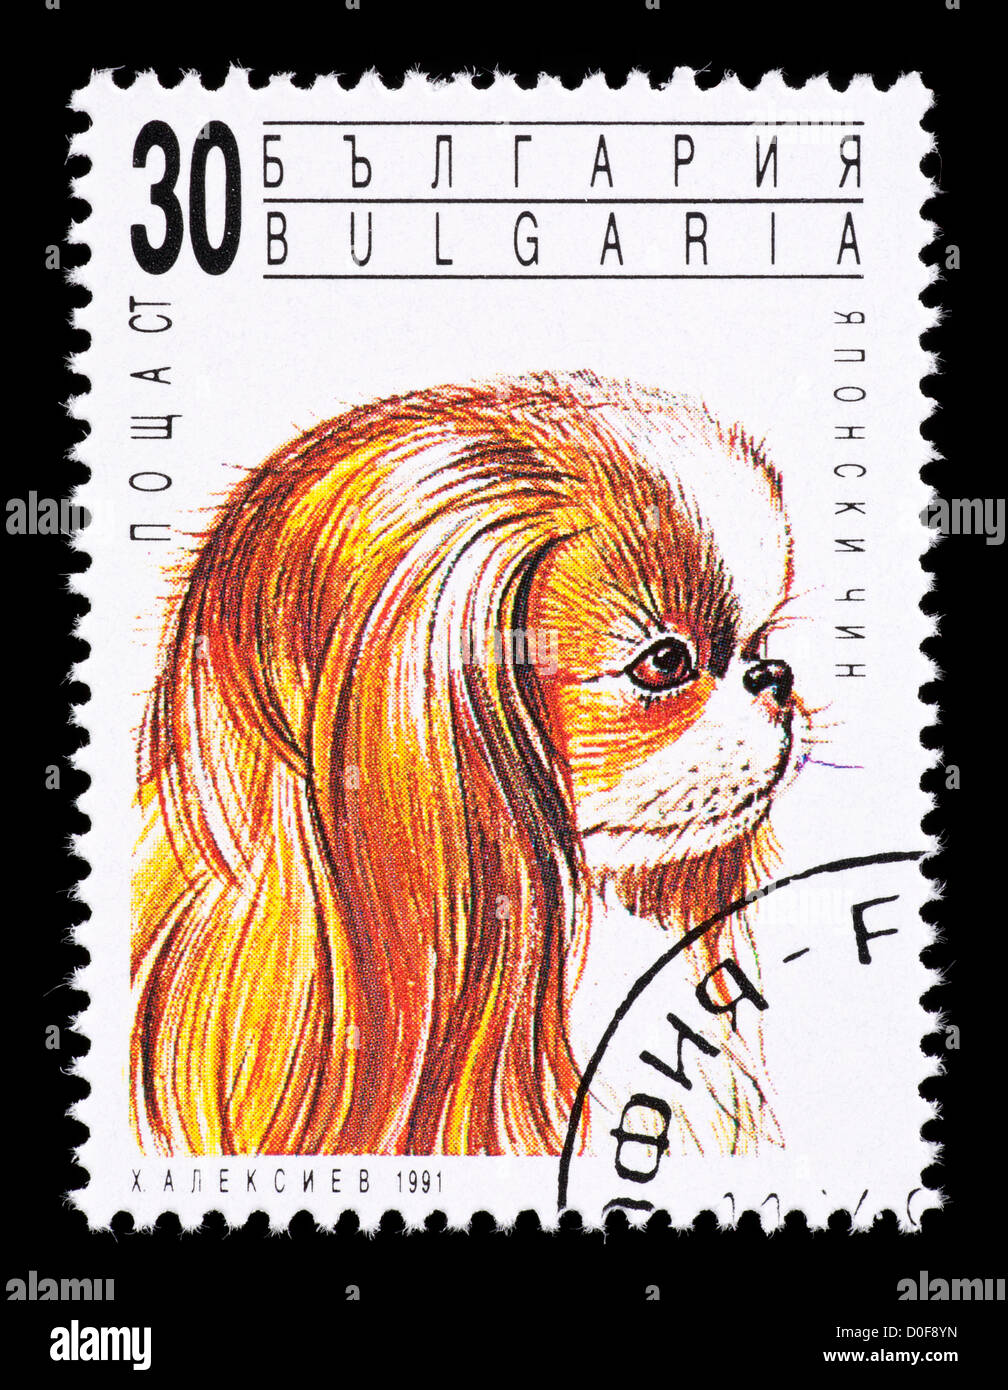 Postage stamp from Bulgaria depicting a small lapdog. - Stock Image